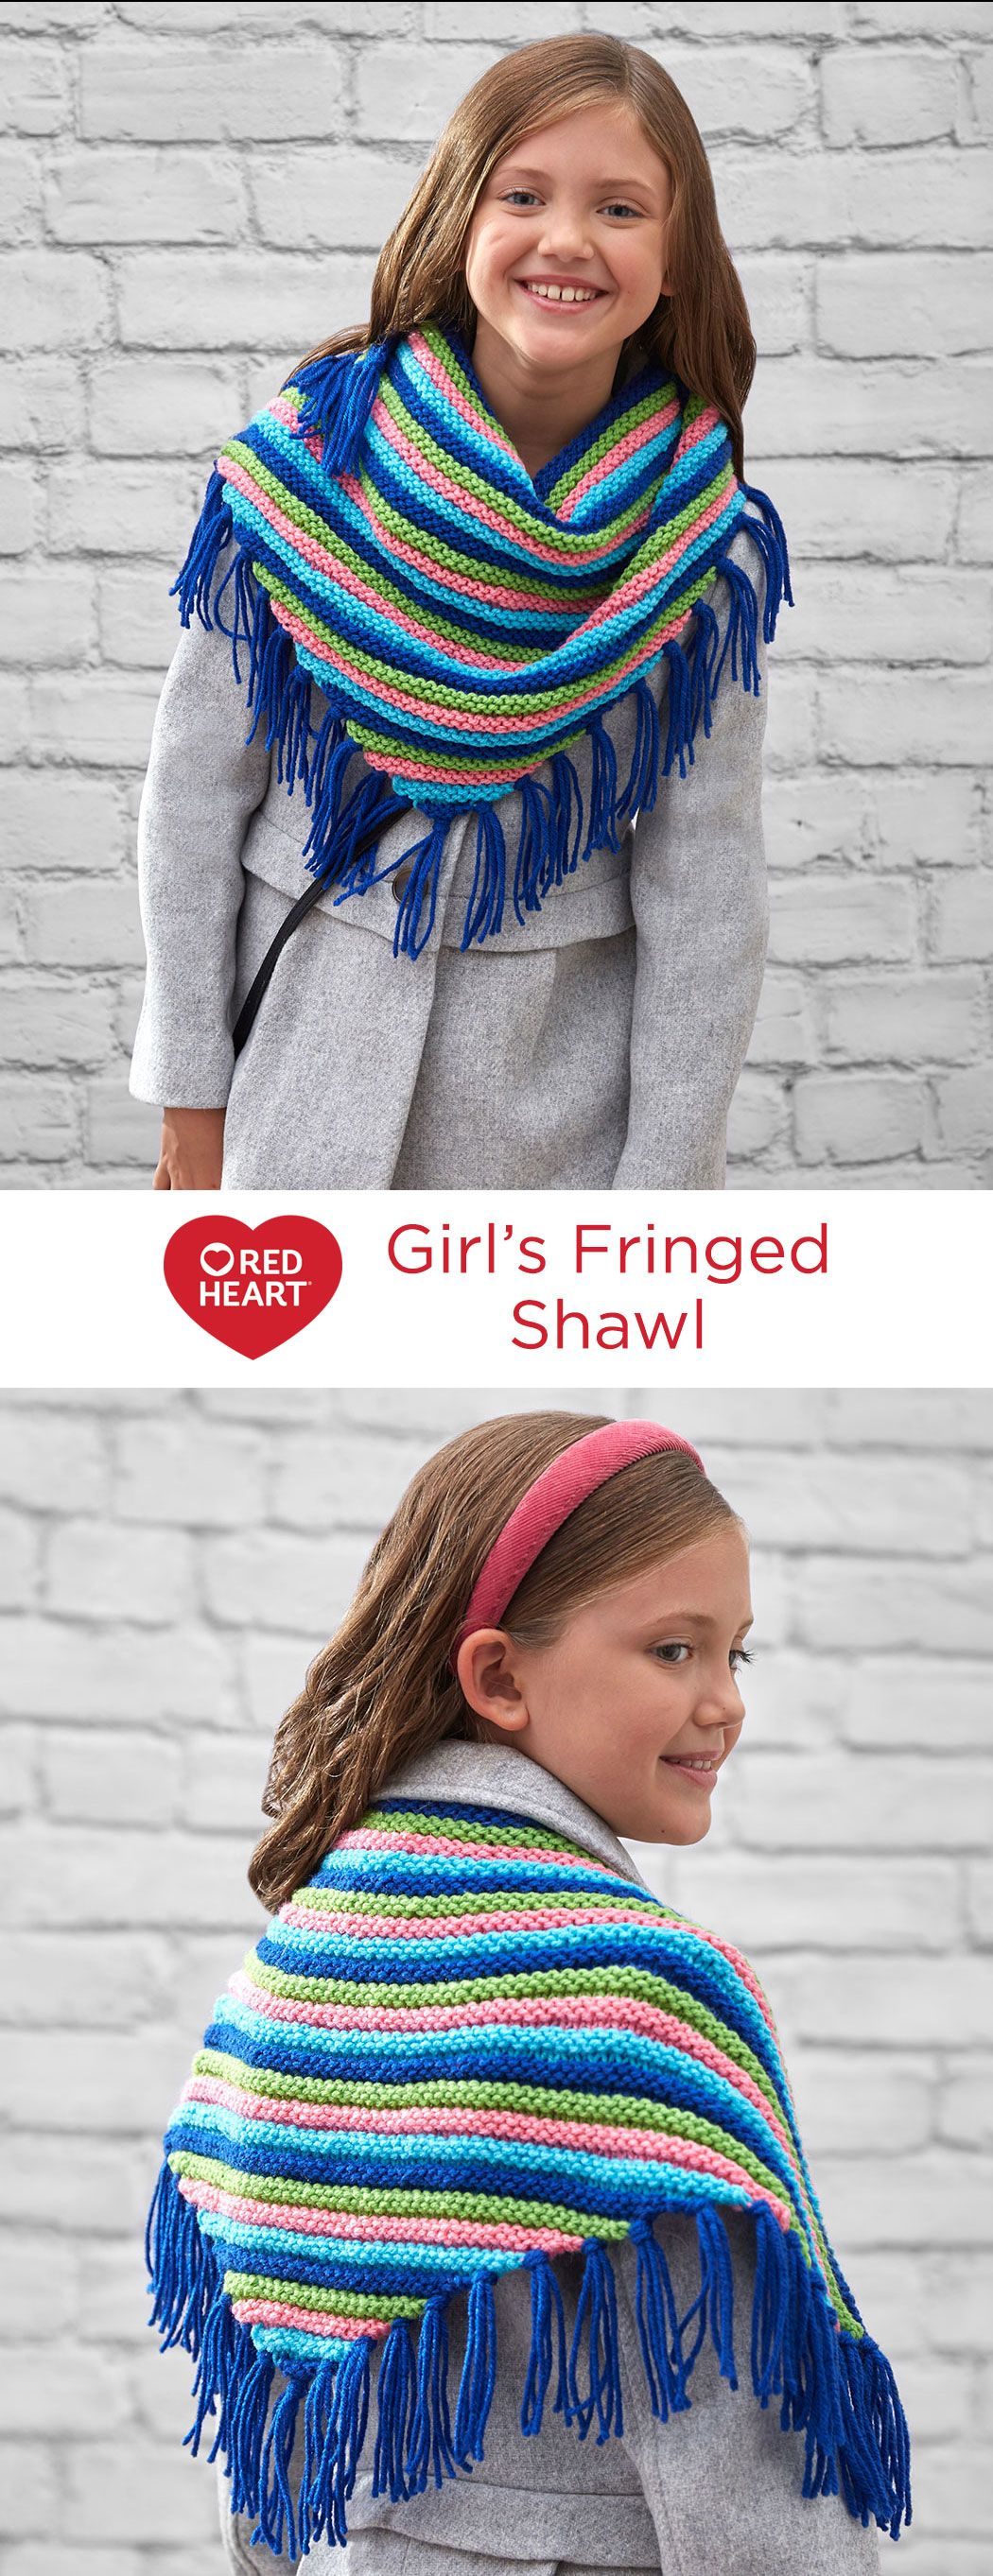 Girls' Fringed Scarf Free Knitting Pattern in Red Heart Yarns -- Choose four colorful shades in her favorite colors and knit a triangle scarf. It will keep the chill off on crisp days or add an extra layer of warmth on winter coat days. The Double Garter pattern starts at the top and decreases down to the point. Trendy fringe gives it the ideal finish!